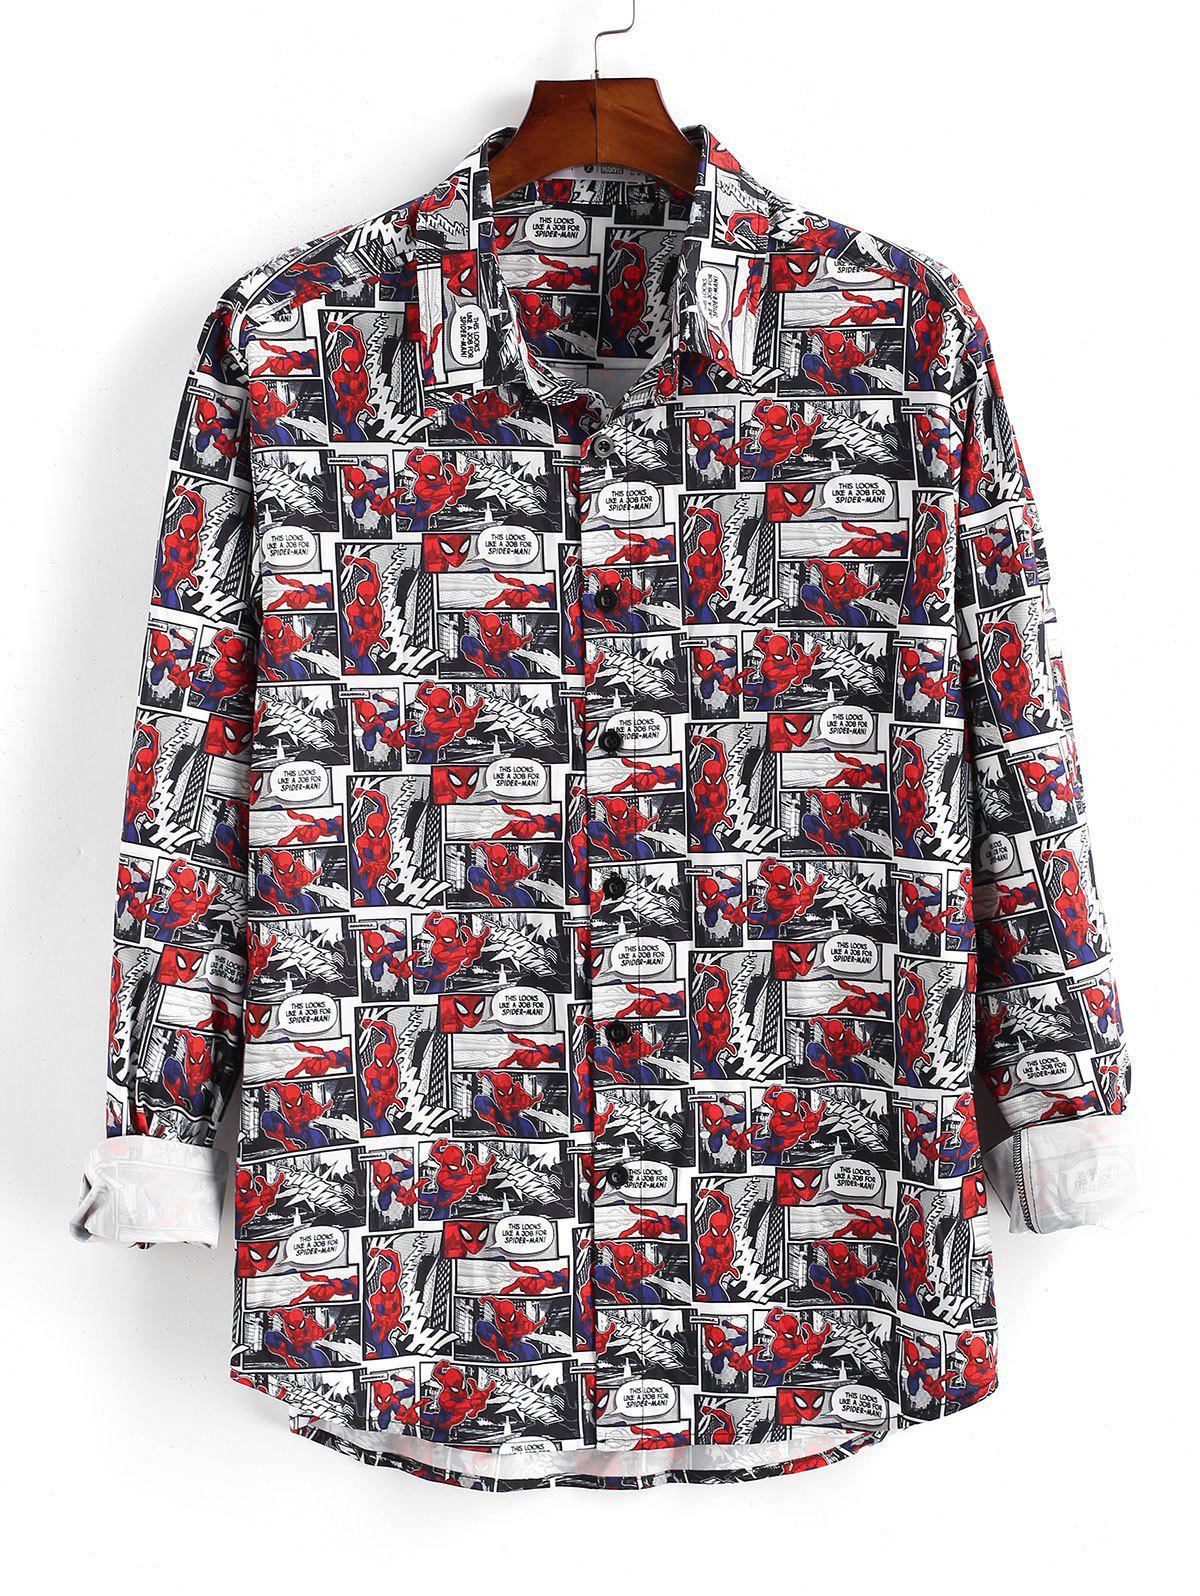 Chic Marvel Spider-Man Button Up Comics Print Shirt